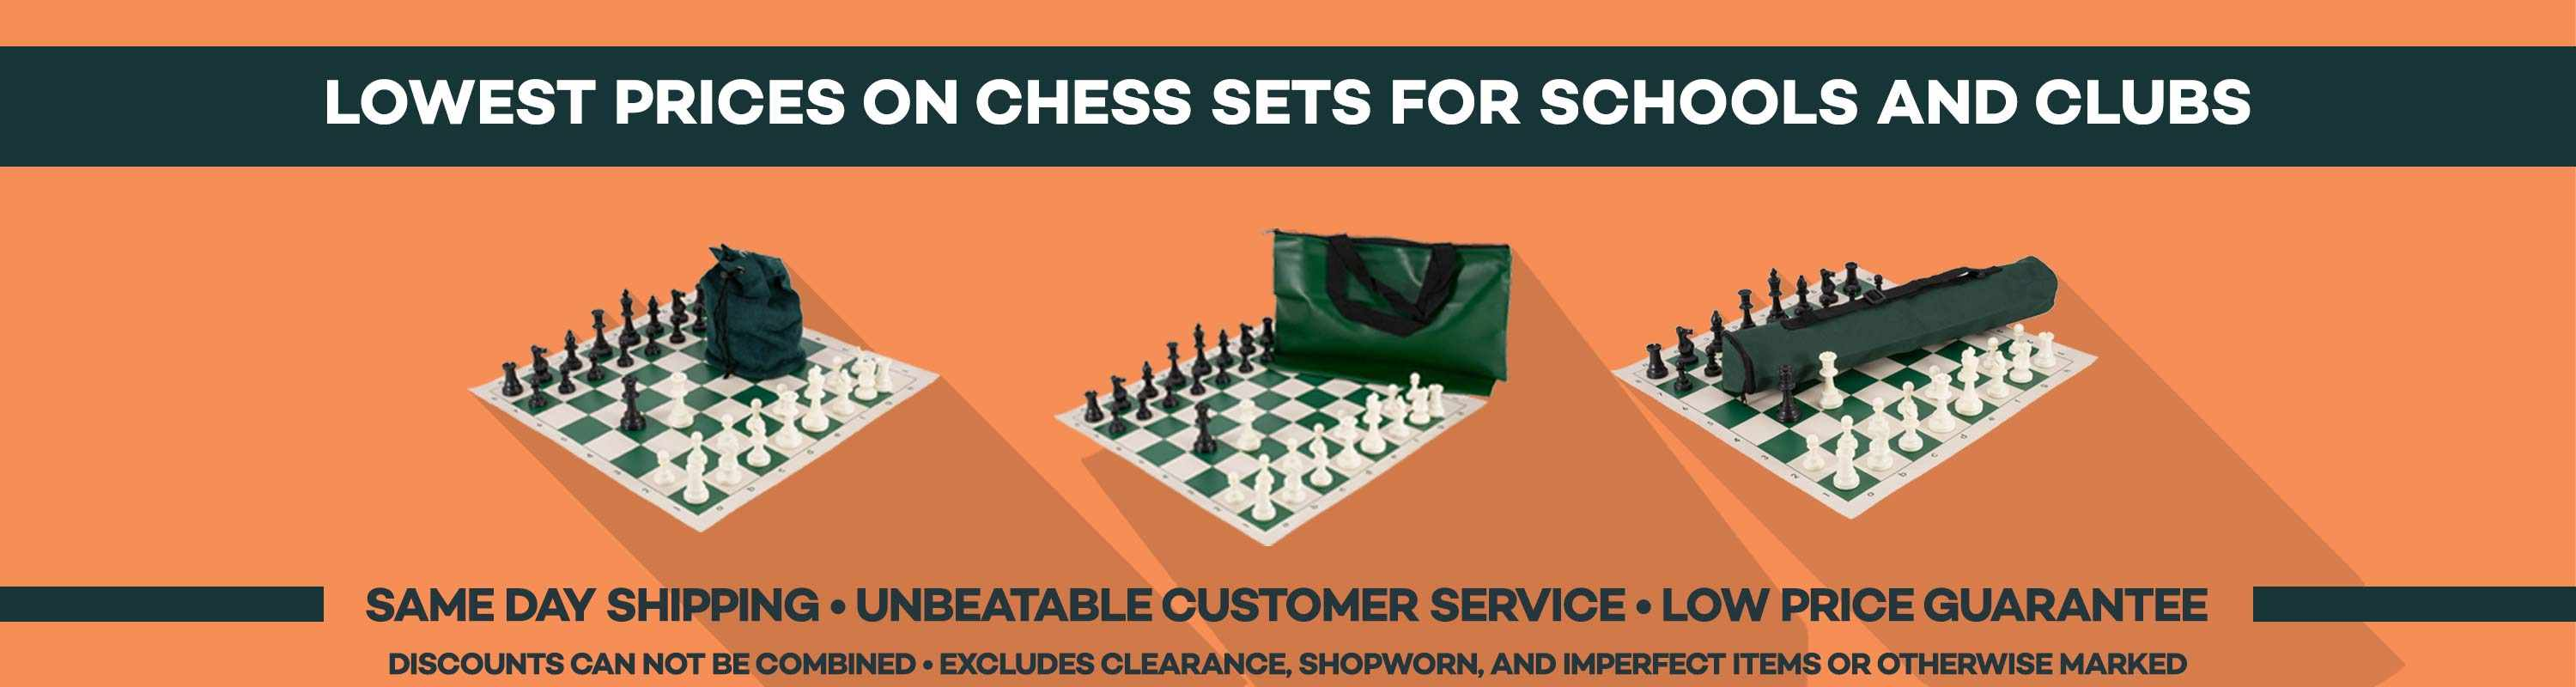 Lowest Prices on Chess Sets for Schools and Clubs